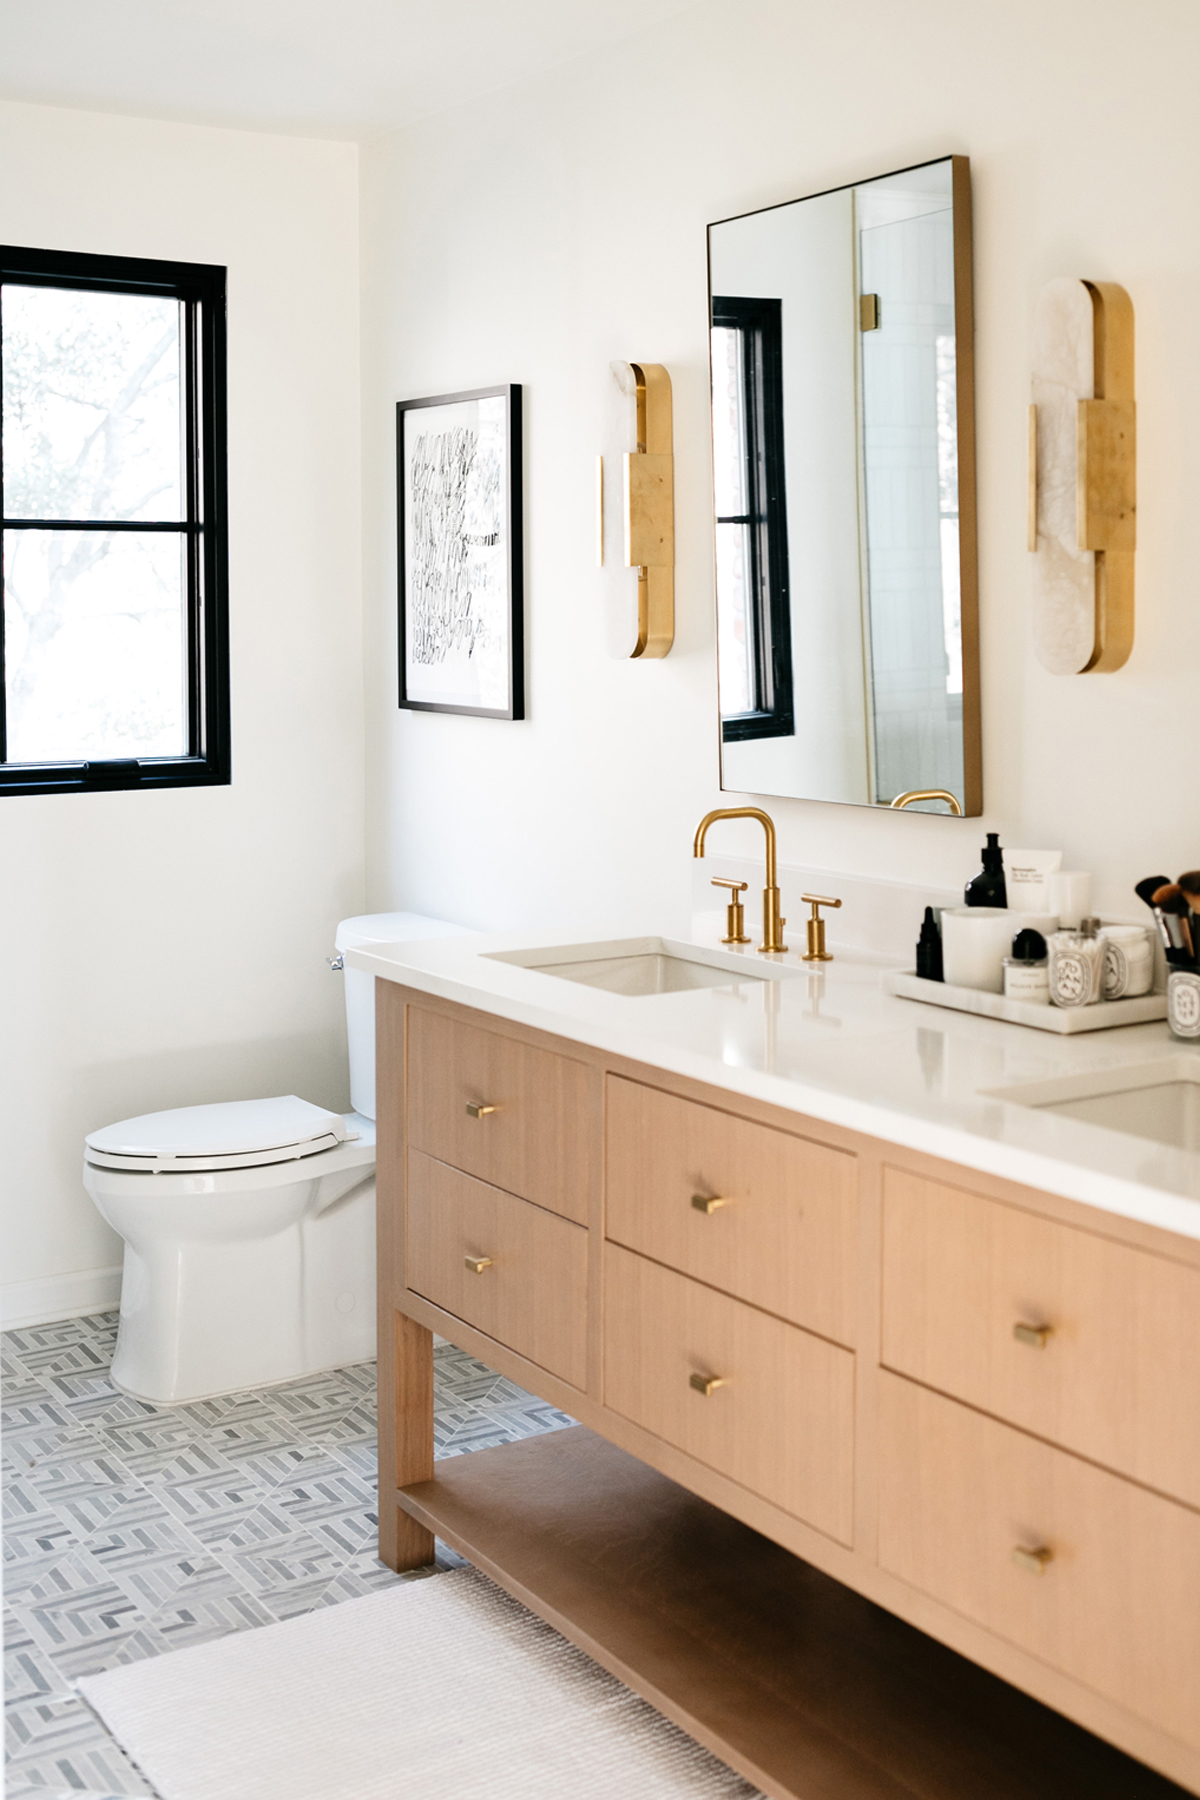 Fashion-Jackson-Transitional-Bathroom-Remodel-Kelly-Werstler-Melange-Lighting-White-Quartz-Bathroom-Counters-Kelly-Werster-Liaison-Mosaic-Tile